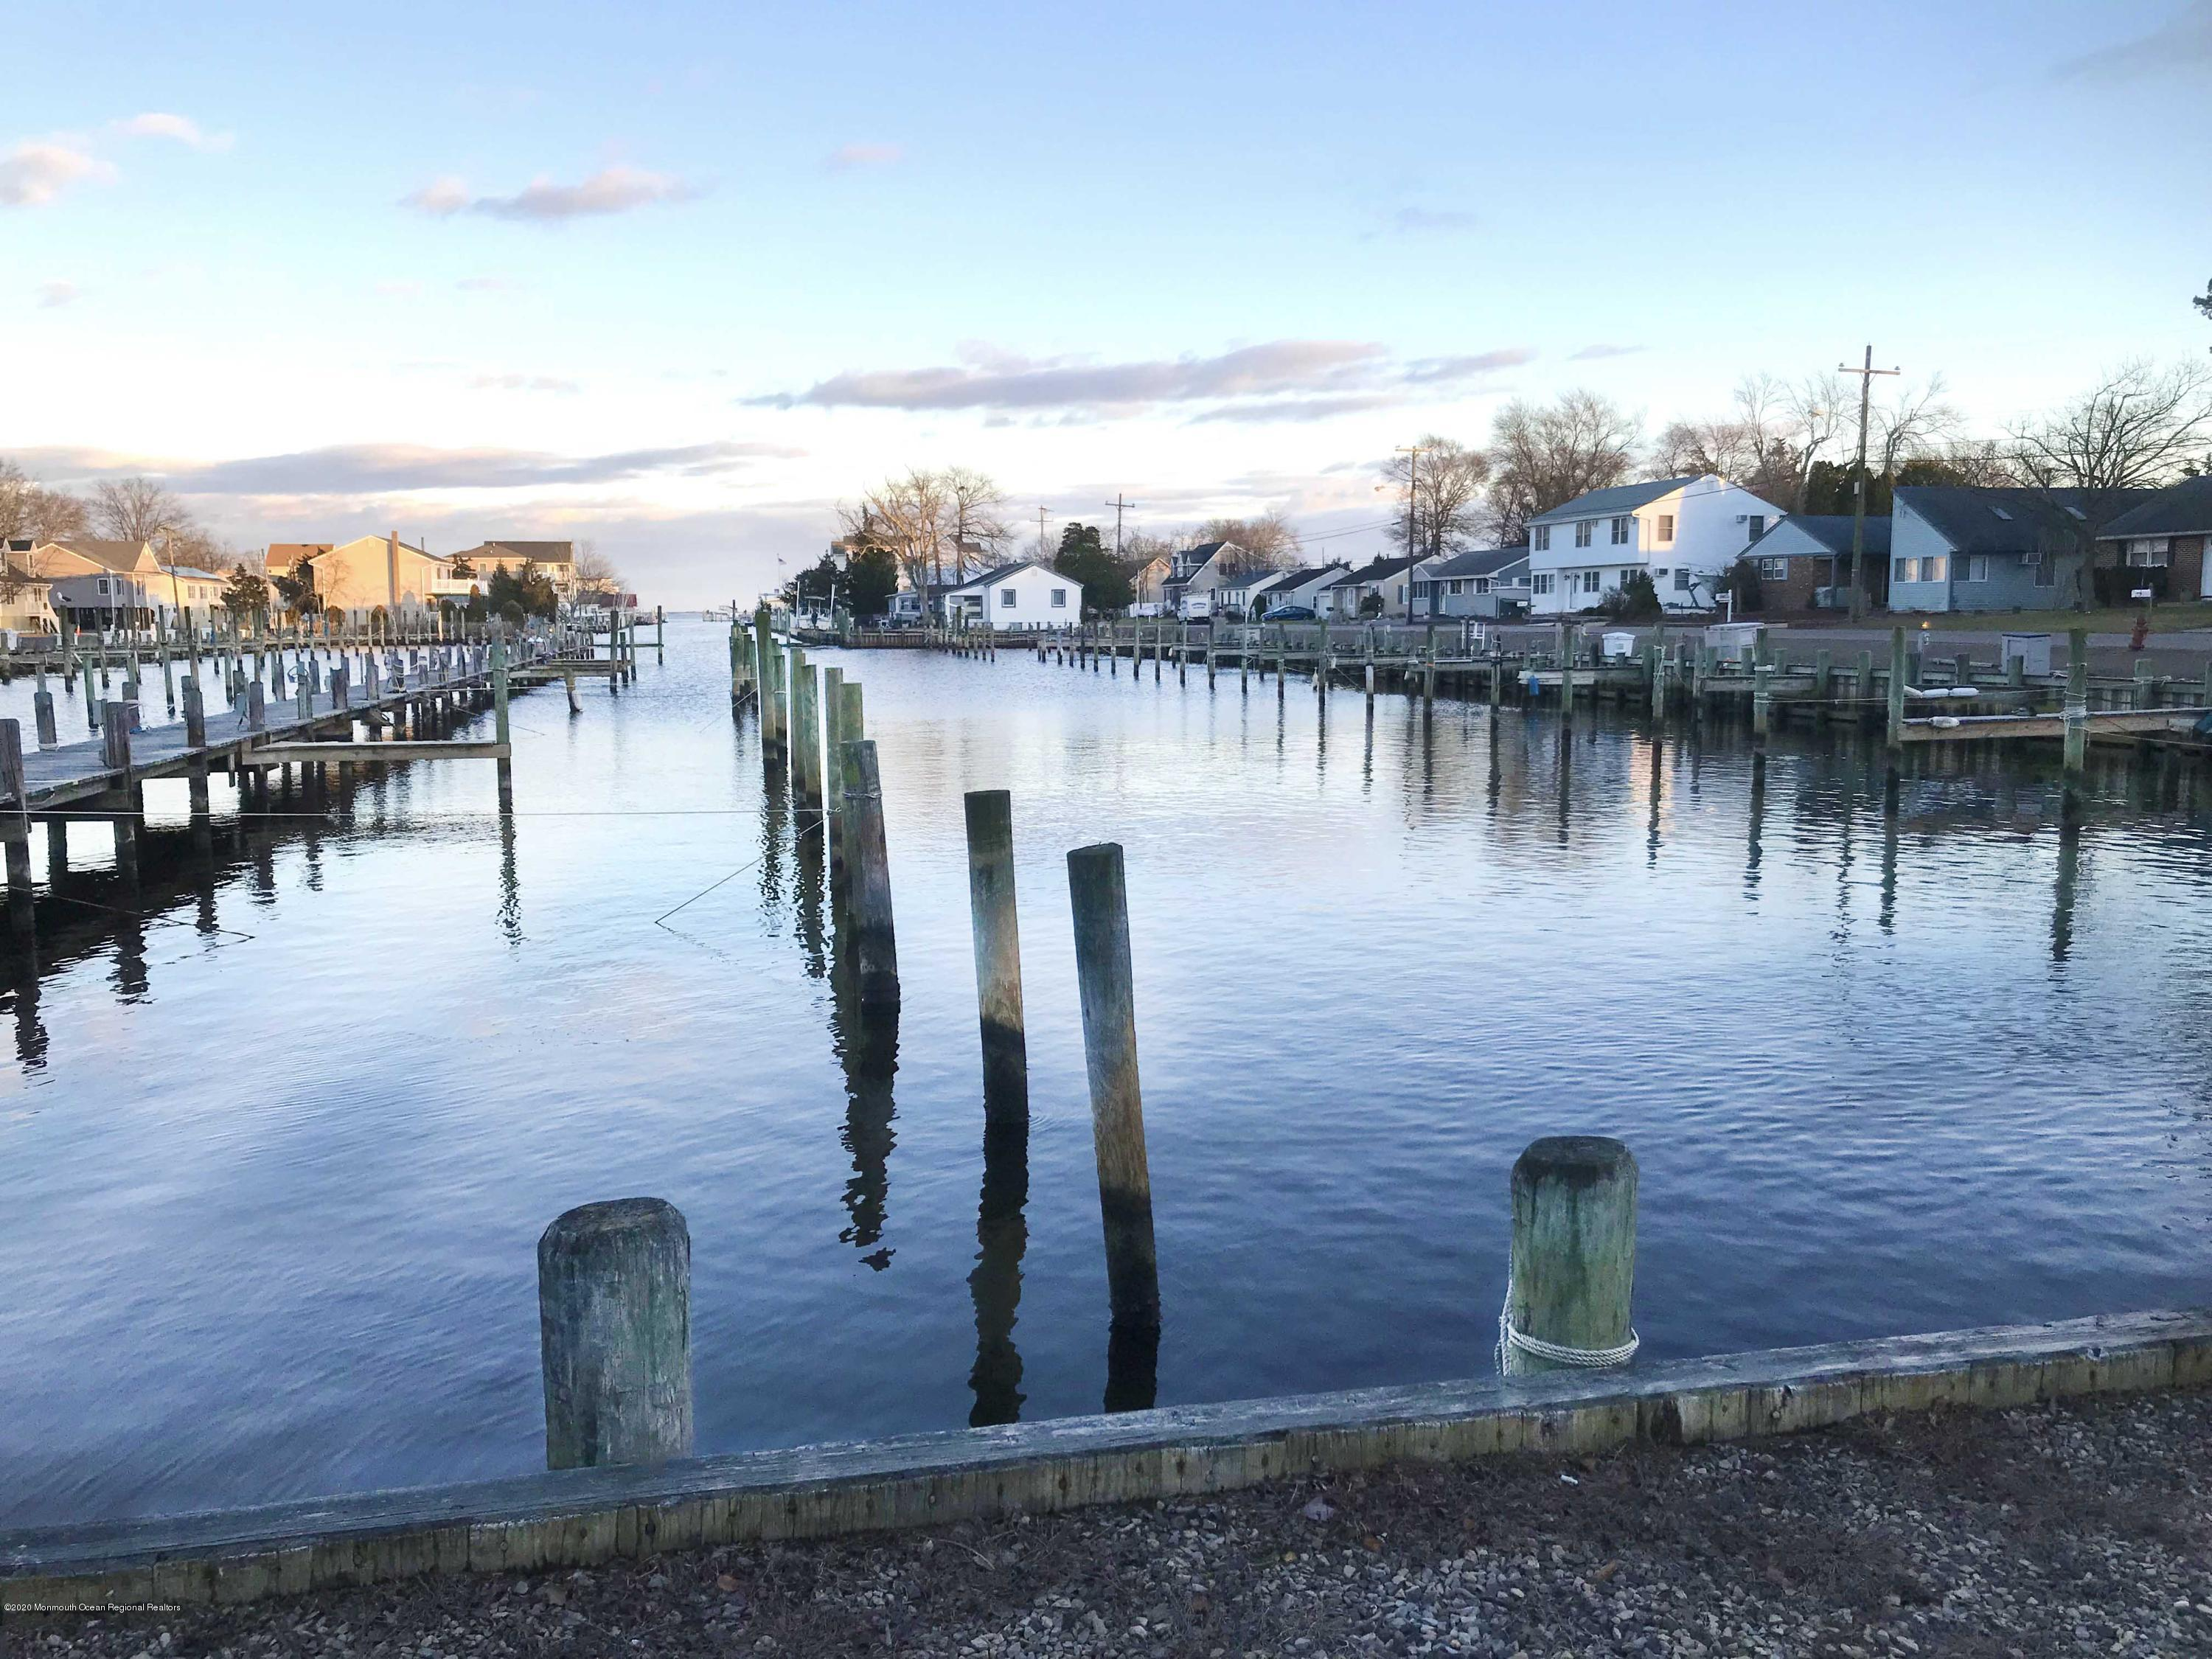 Live the dream with this opportunity to own your own marina! Located on the protected South Harbor Lagoon in Waretown, NJ. with direct access to the Barnegat Bay and the intracoastal waterway. Located across the bay from the Barnegat Inlet, less than a 15 minute boat ride from the Atlantic Ocean.130+ slips for boats up to 50 feet, with direct parking behind most boat slips, offering your boaters convenient, quiet and uninterrupted use of their boat. Mens/womens restrooms, picnic area, bbq grills, trash disposal, 30-amp metered electric and dockside water. Perfect location for skiers, cruisers or fishermen. Neighboring marina is full service with fuel and repair. Possible Seller financing available.